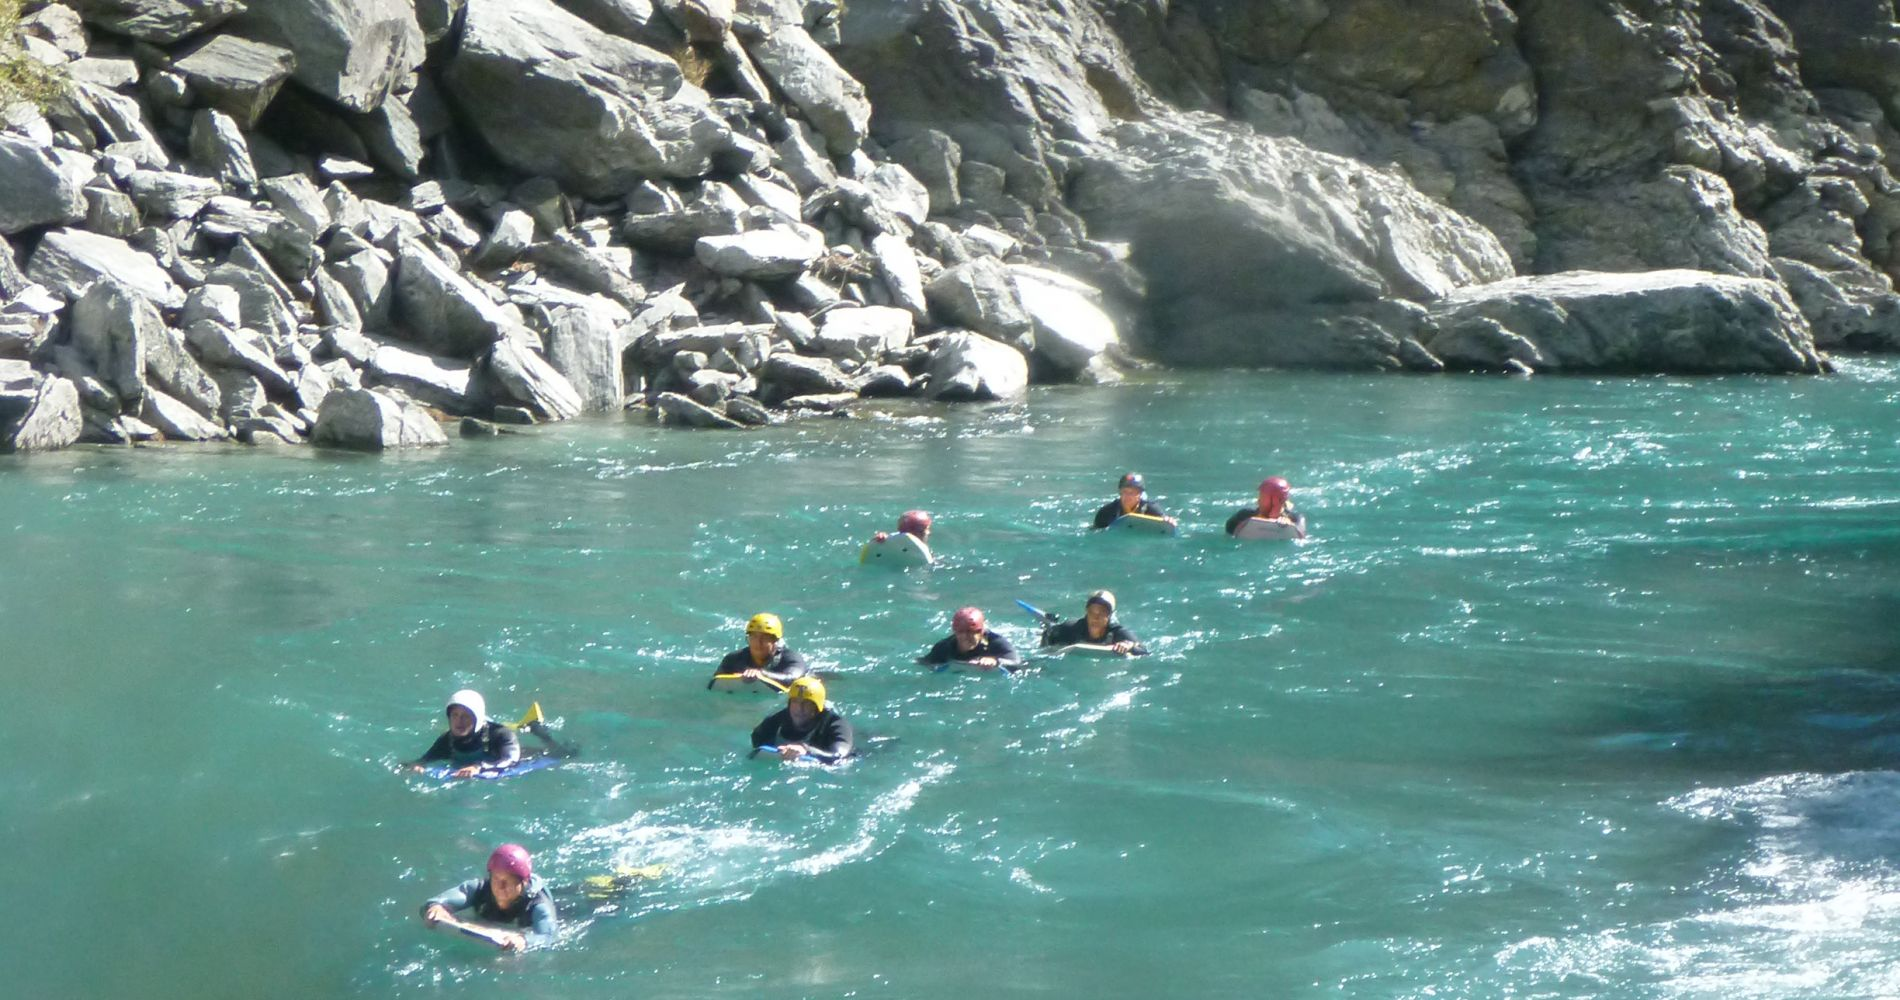 Exhilarating River Boarding New Zealand Tinggly Experience Gifts